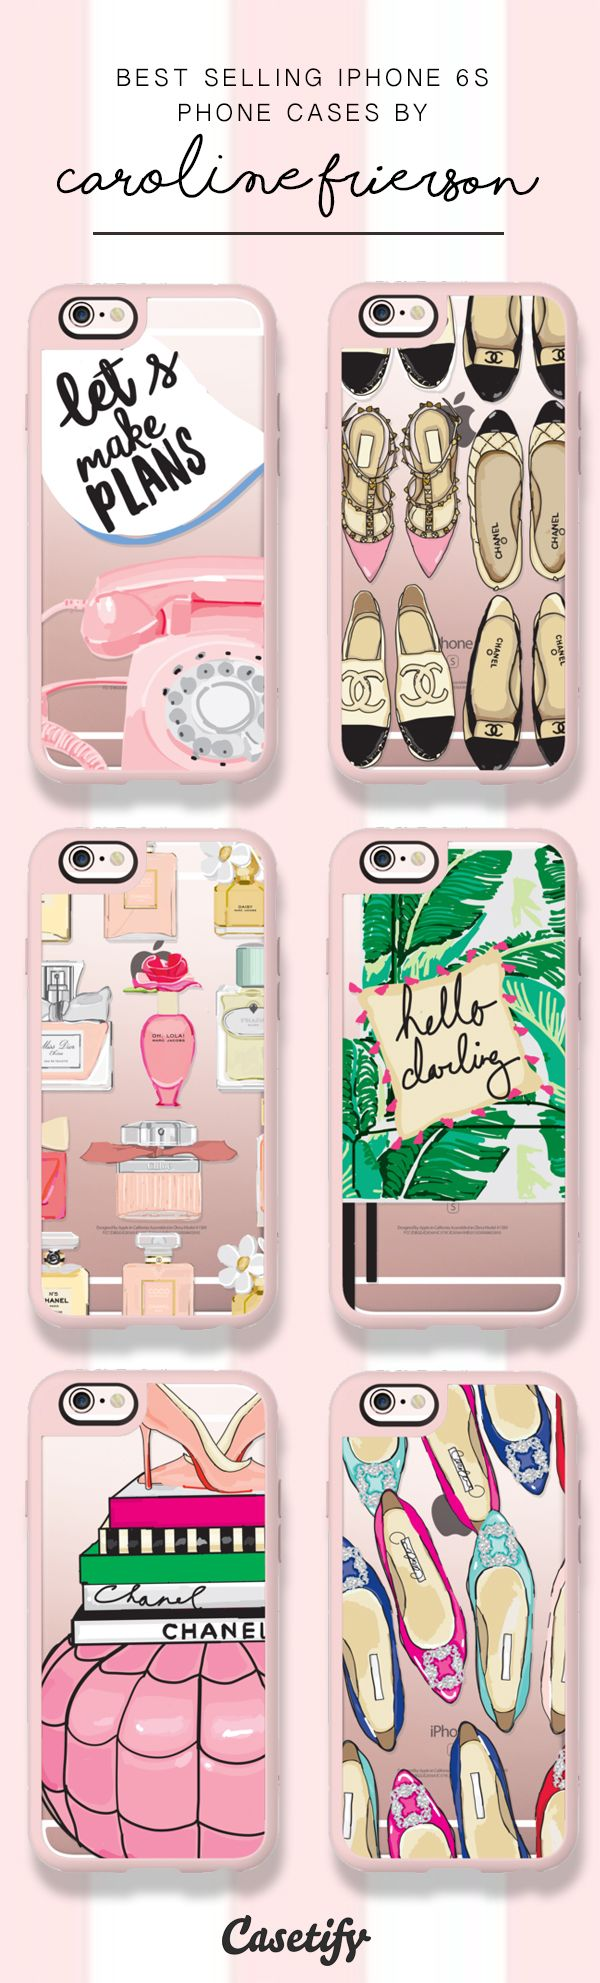 Check these best selling iPhone 6S and iPhone 7 cases by Caroline Frierson here >>> https://www.casetify.com/carolinefrierson/collection